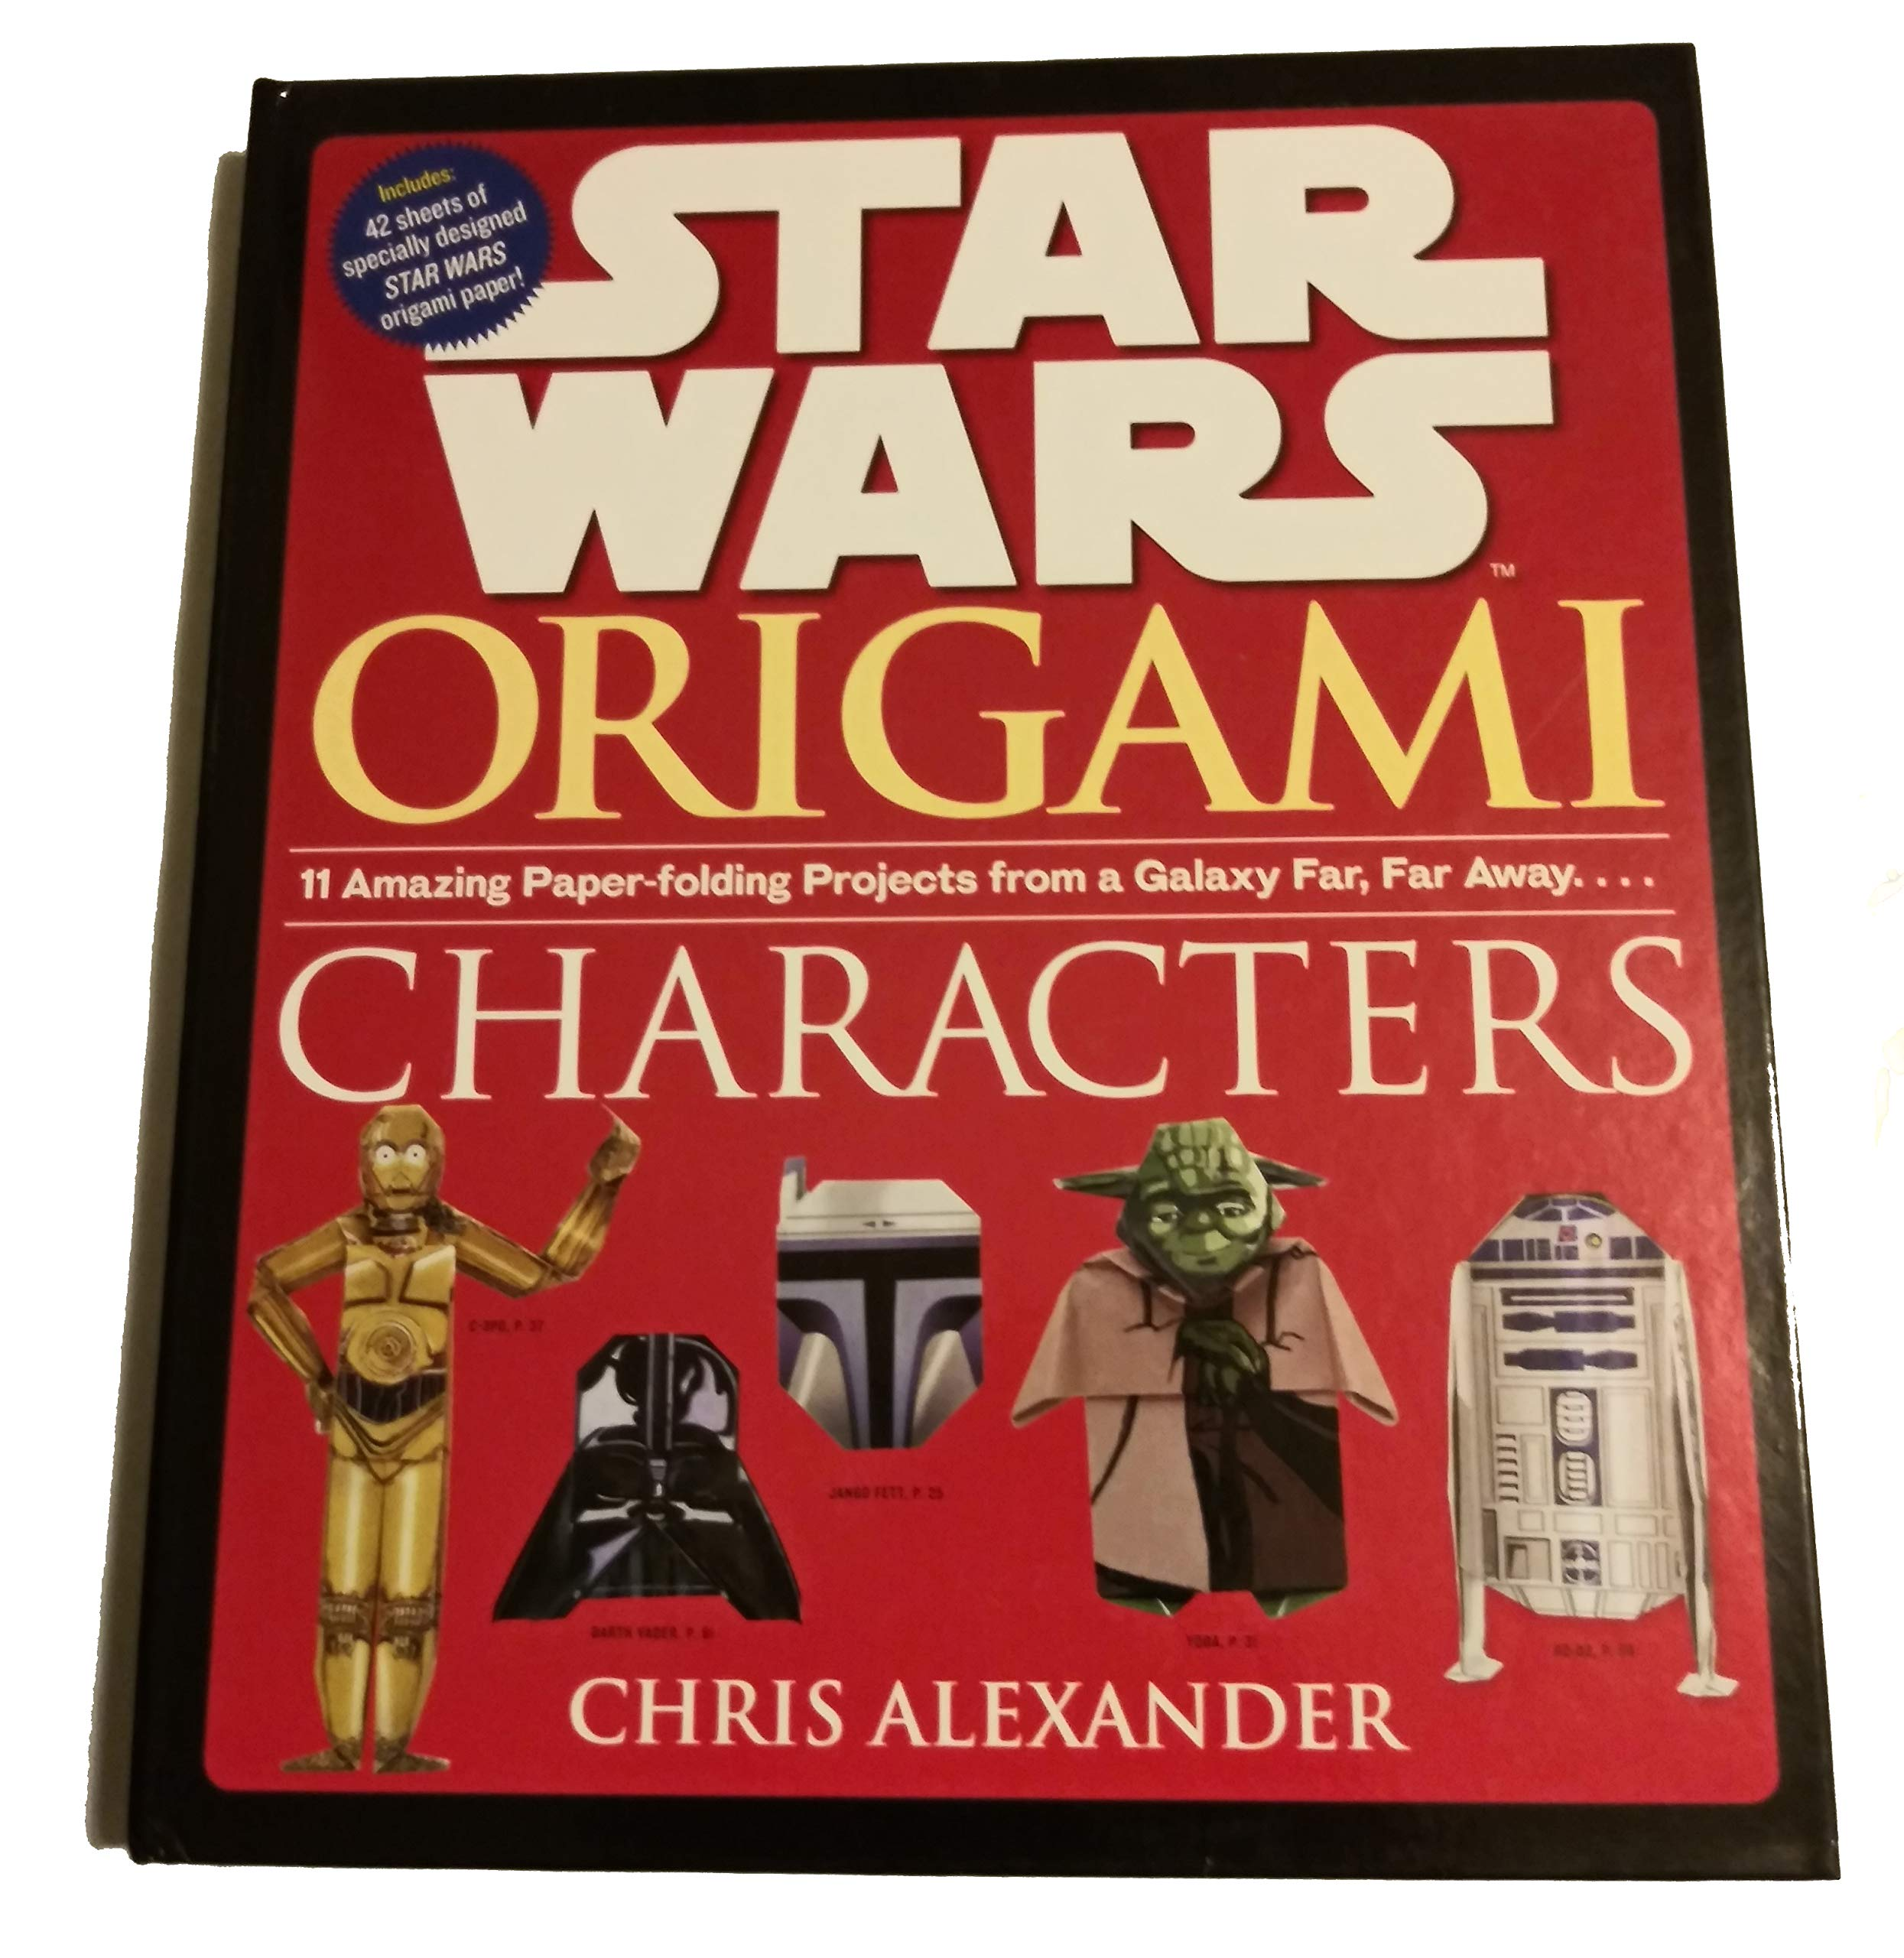 Star Wars Origami: Characters